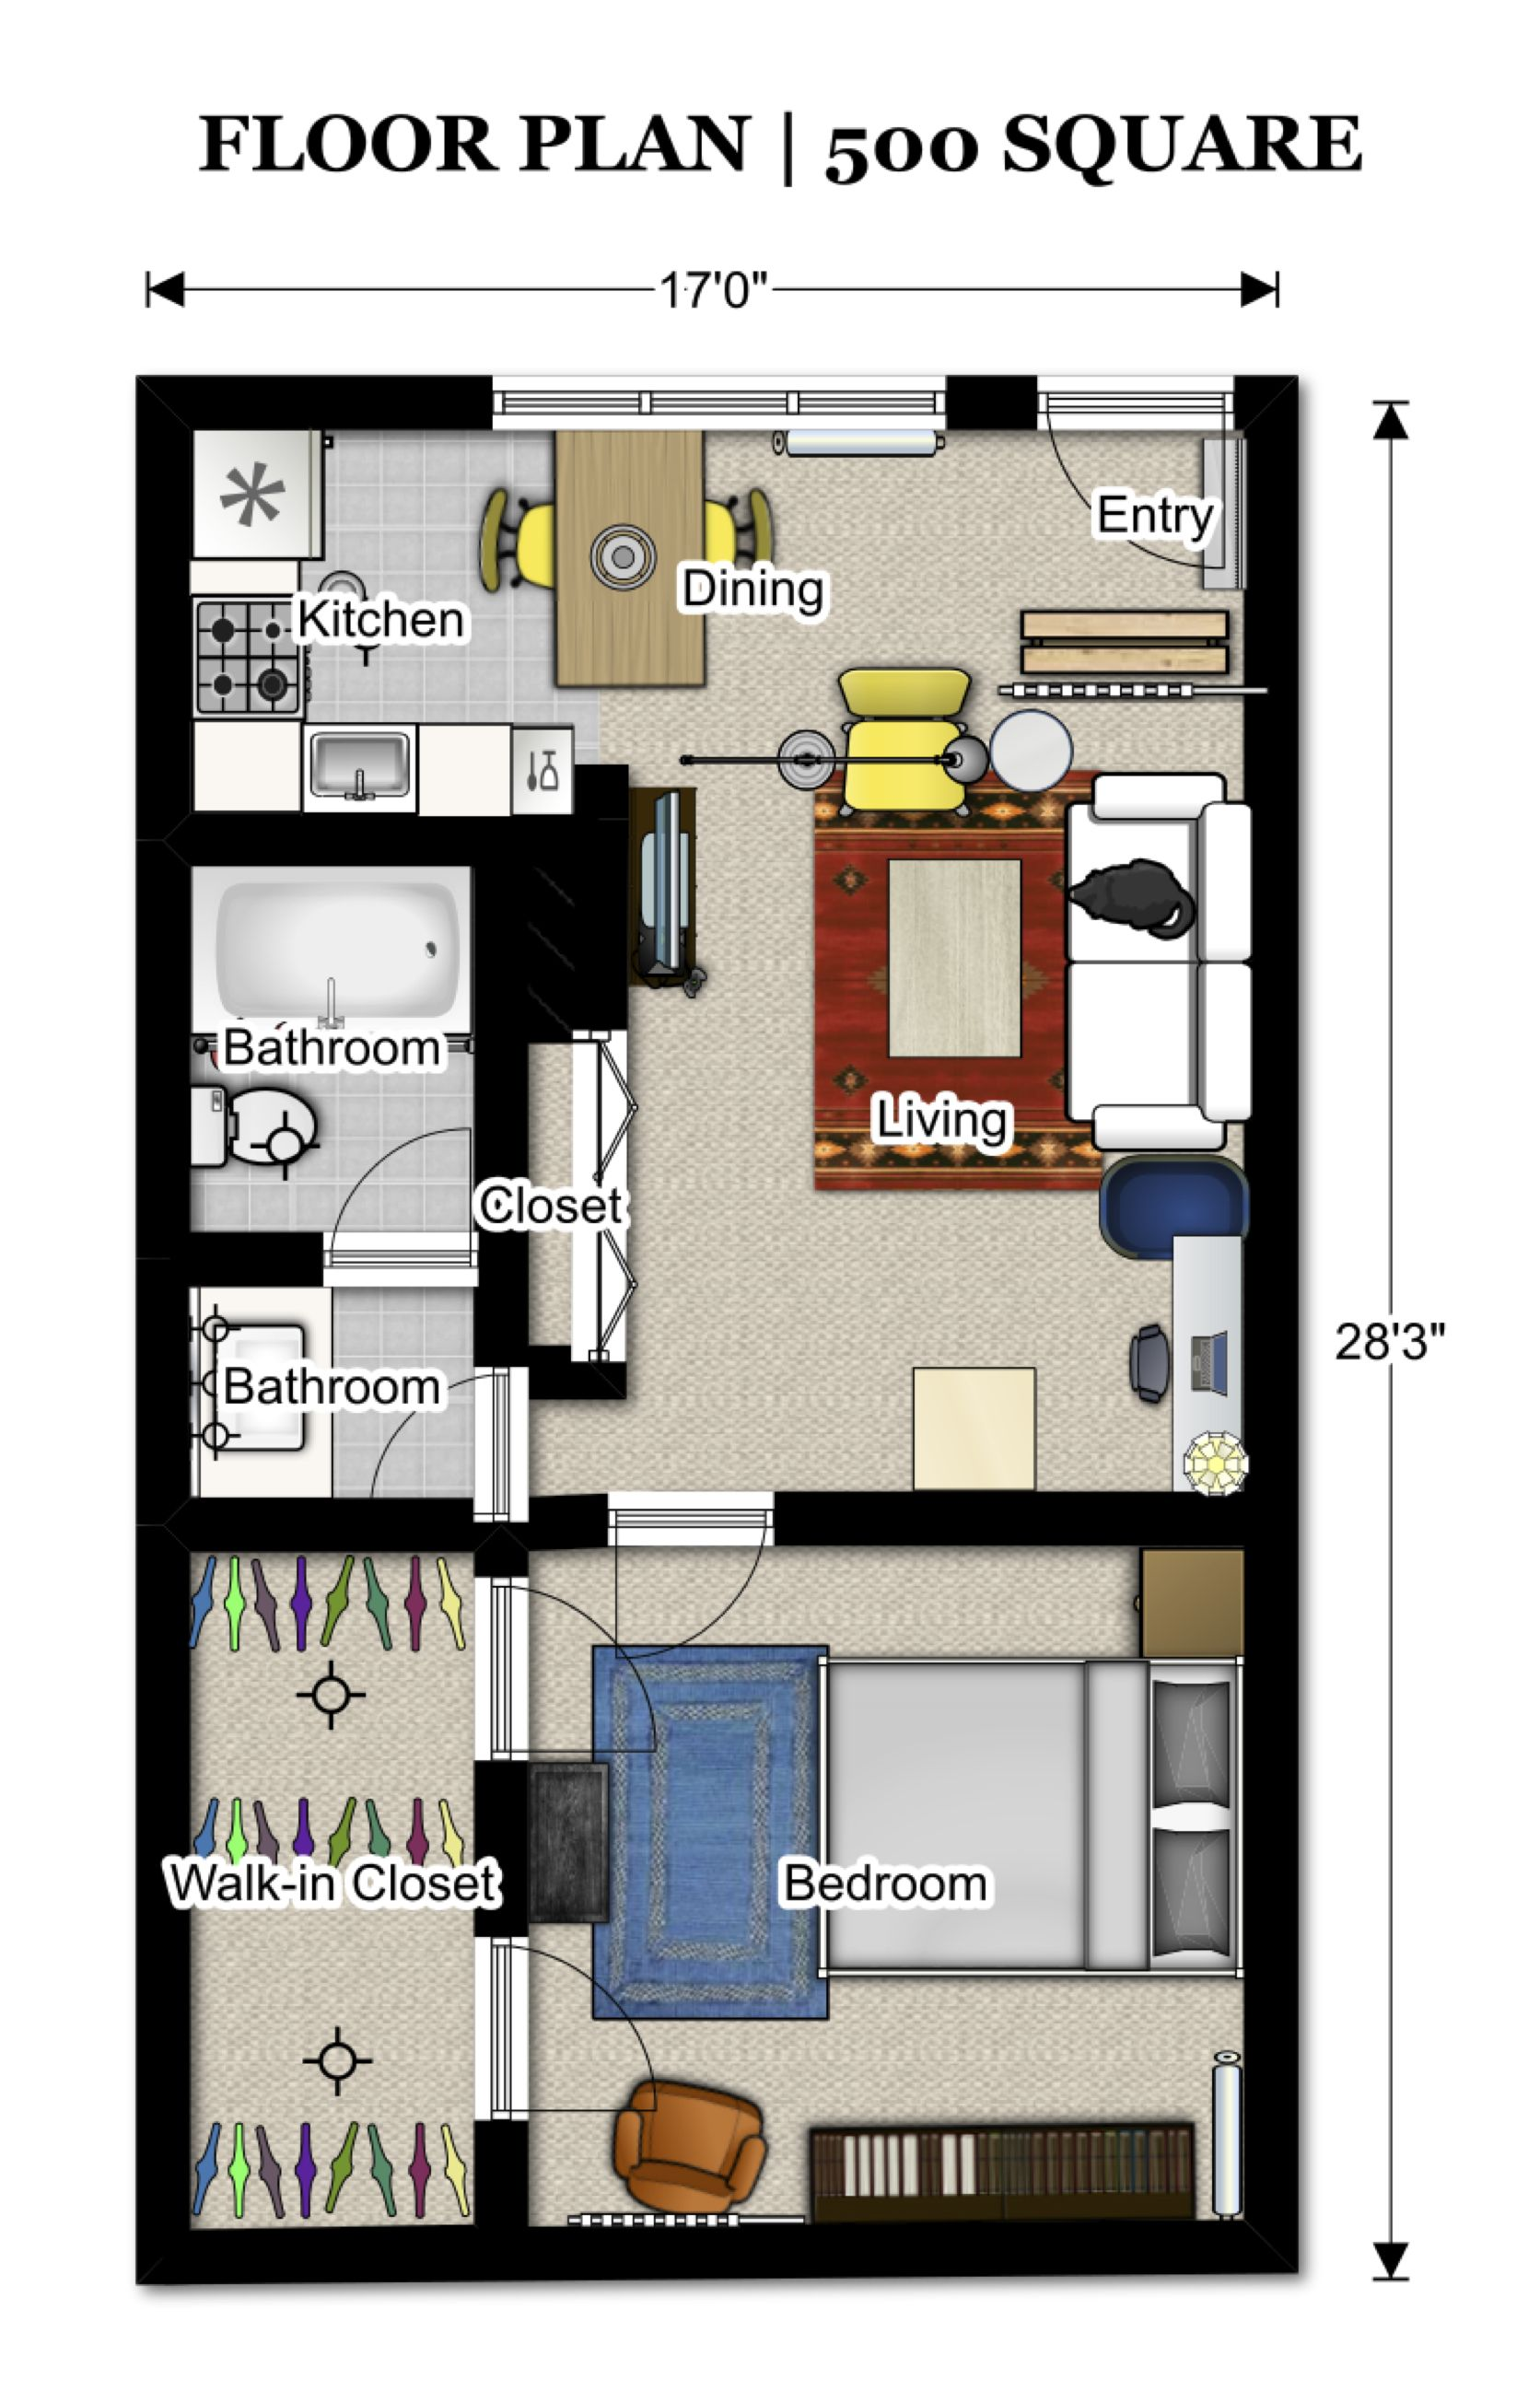 Floor Plans 500 Sq Ft 3523 Pinterest Apartment